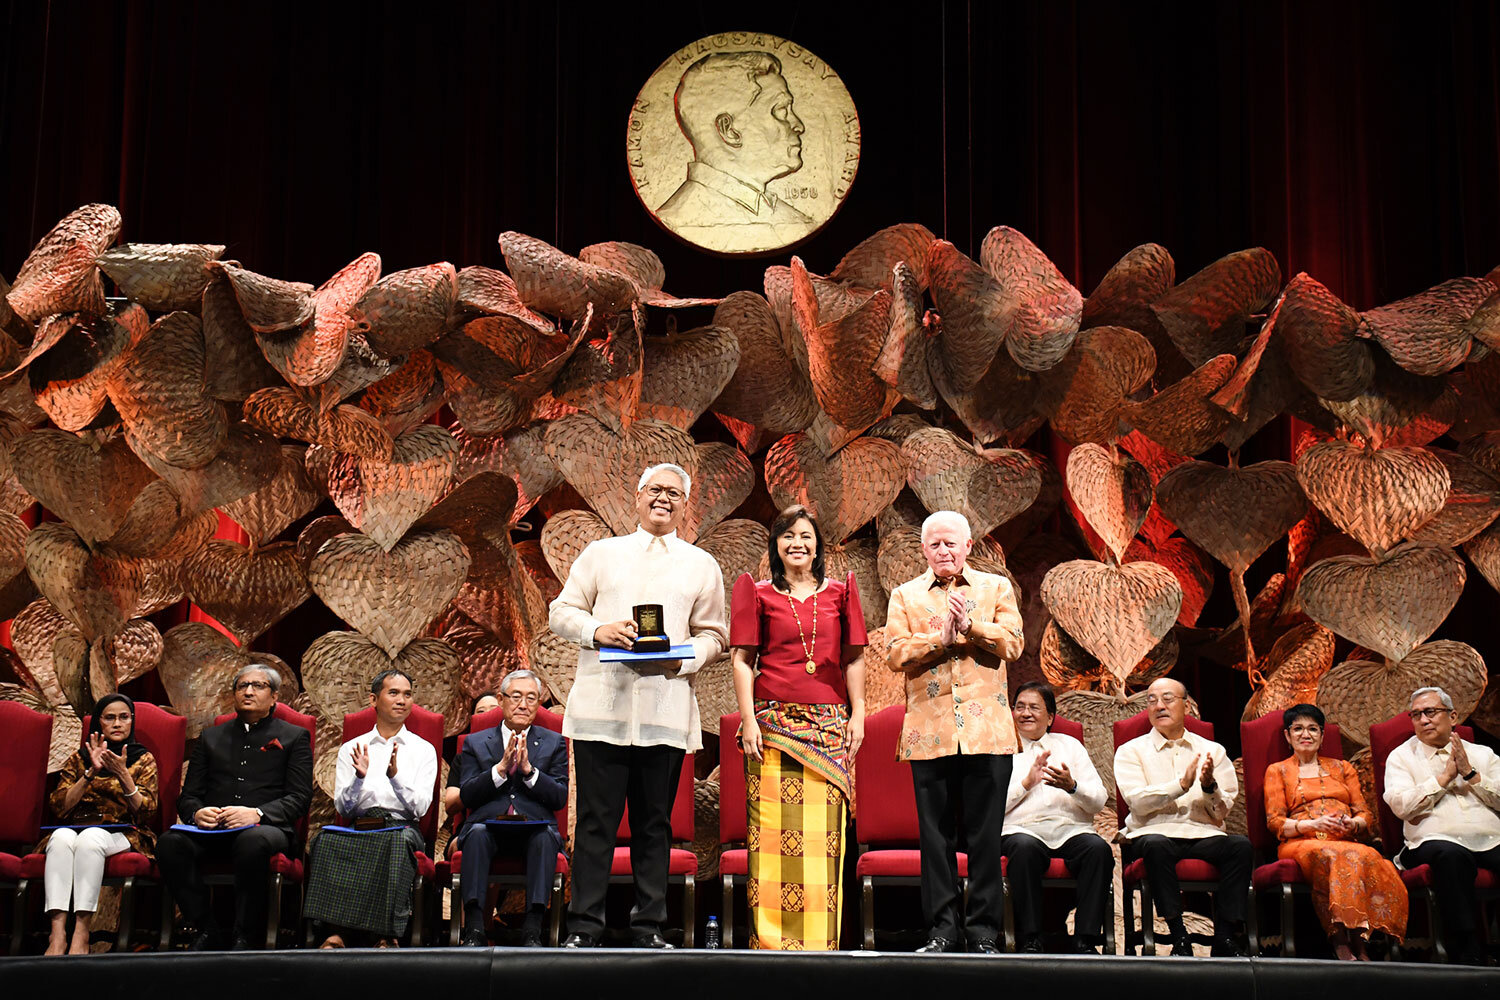 Raymundo Cayabyab receives the Ramon Magsaysay Award from Vice President Leonor Robredo and RMAF Chairman Jose Cuisia during the 2019 Presentation Ceremonies at the Cultural Center of the Philippines on September 9, 2019. (Photo courtesy of the Ramon Magsaysay Award Foundation)